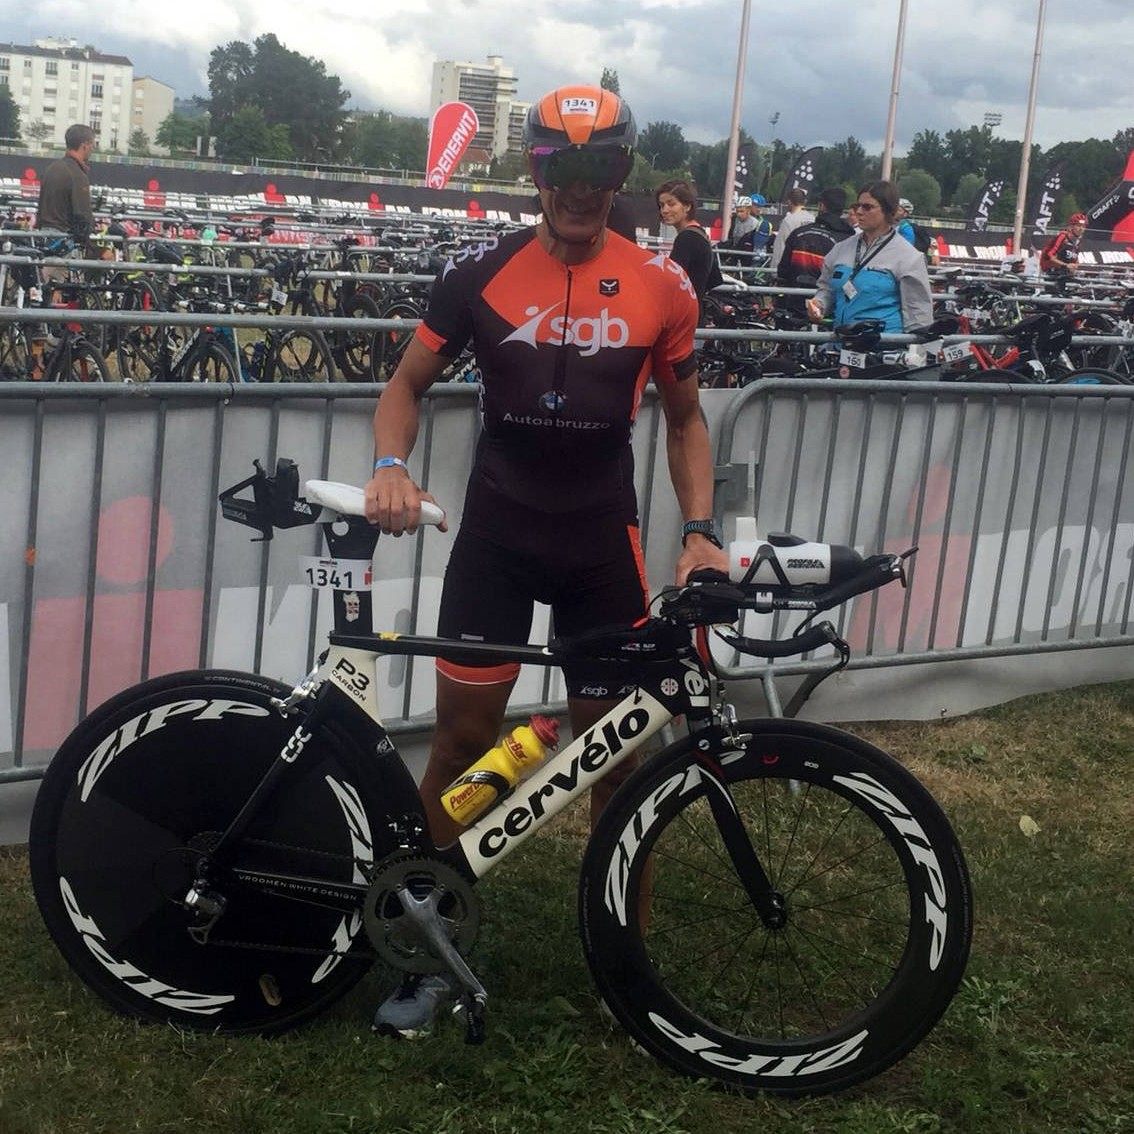 Roberto Tedde, grande prestazione all'IRONMAN France